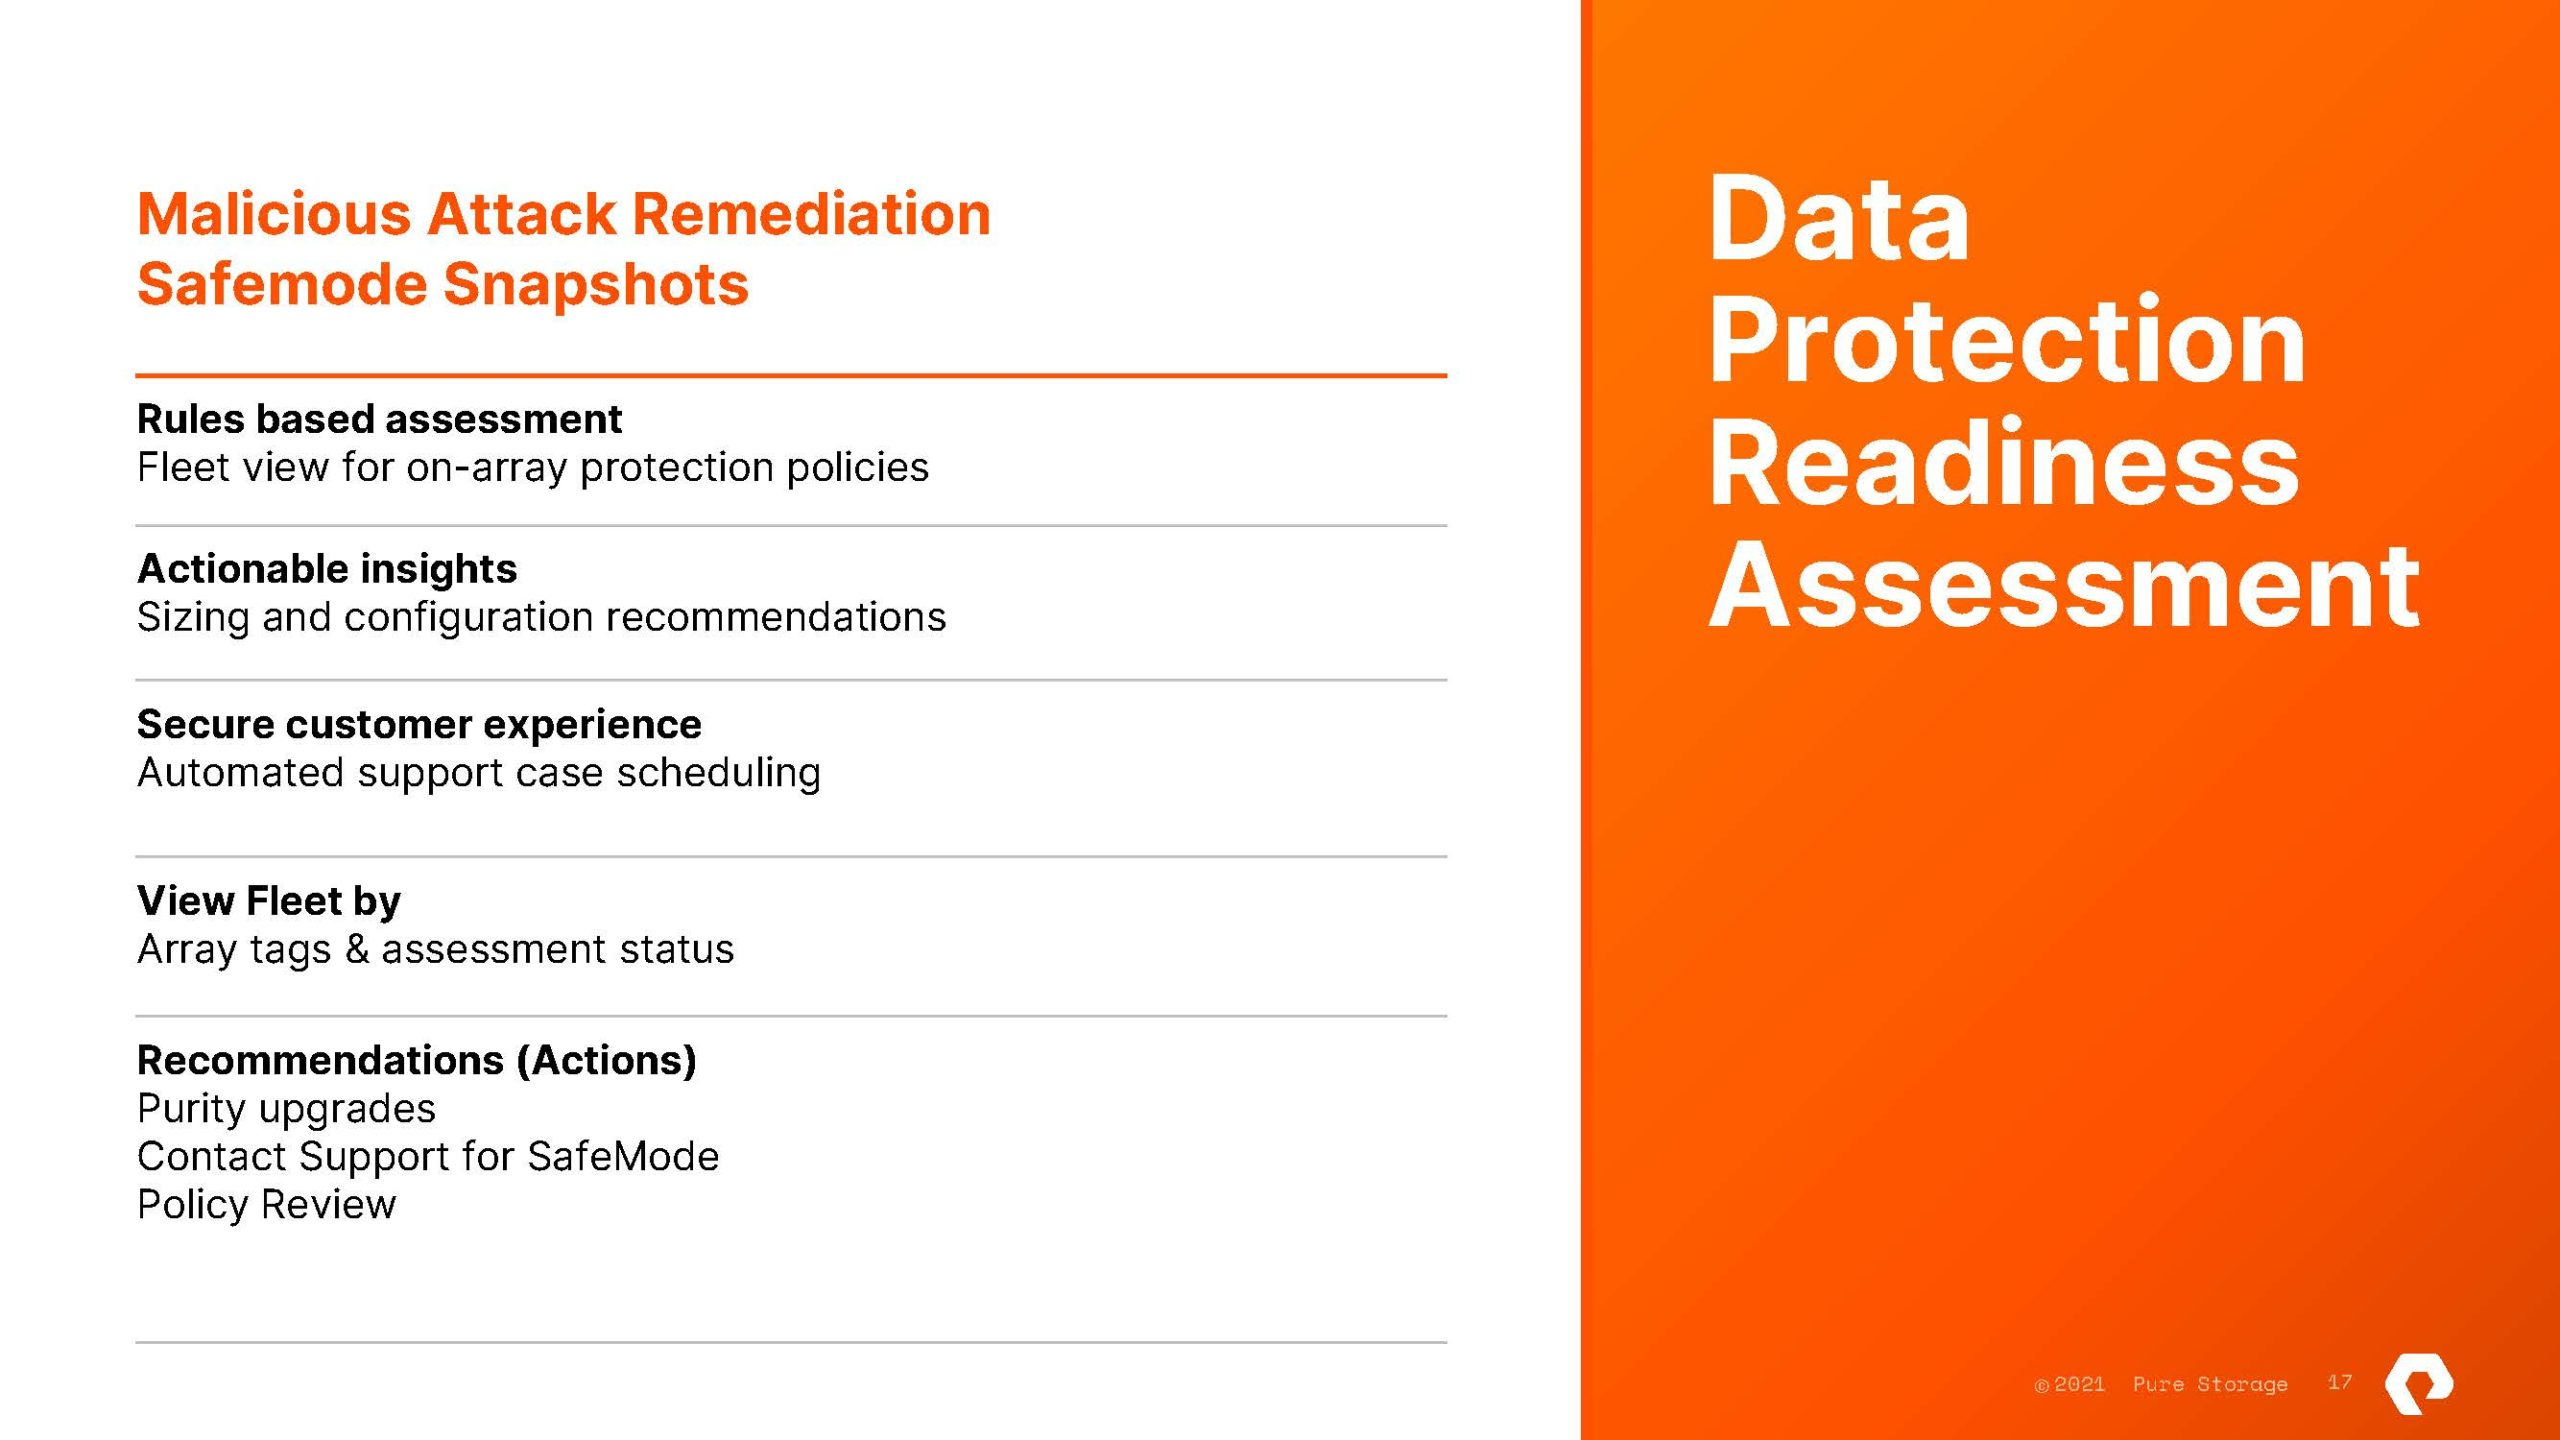 Pure Storage Pure Fusion And Portworx Data Services Data Protection Readiness